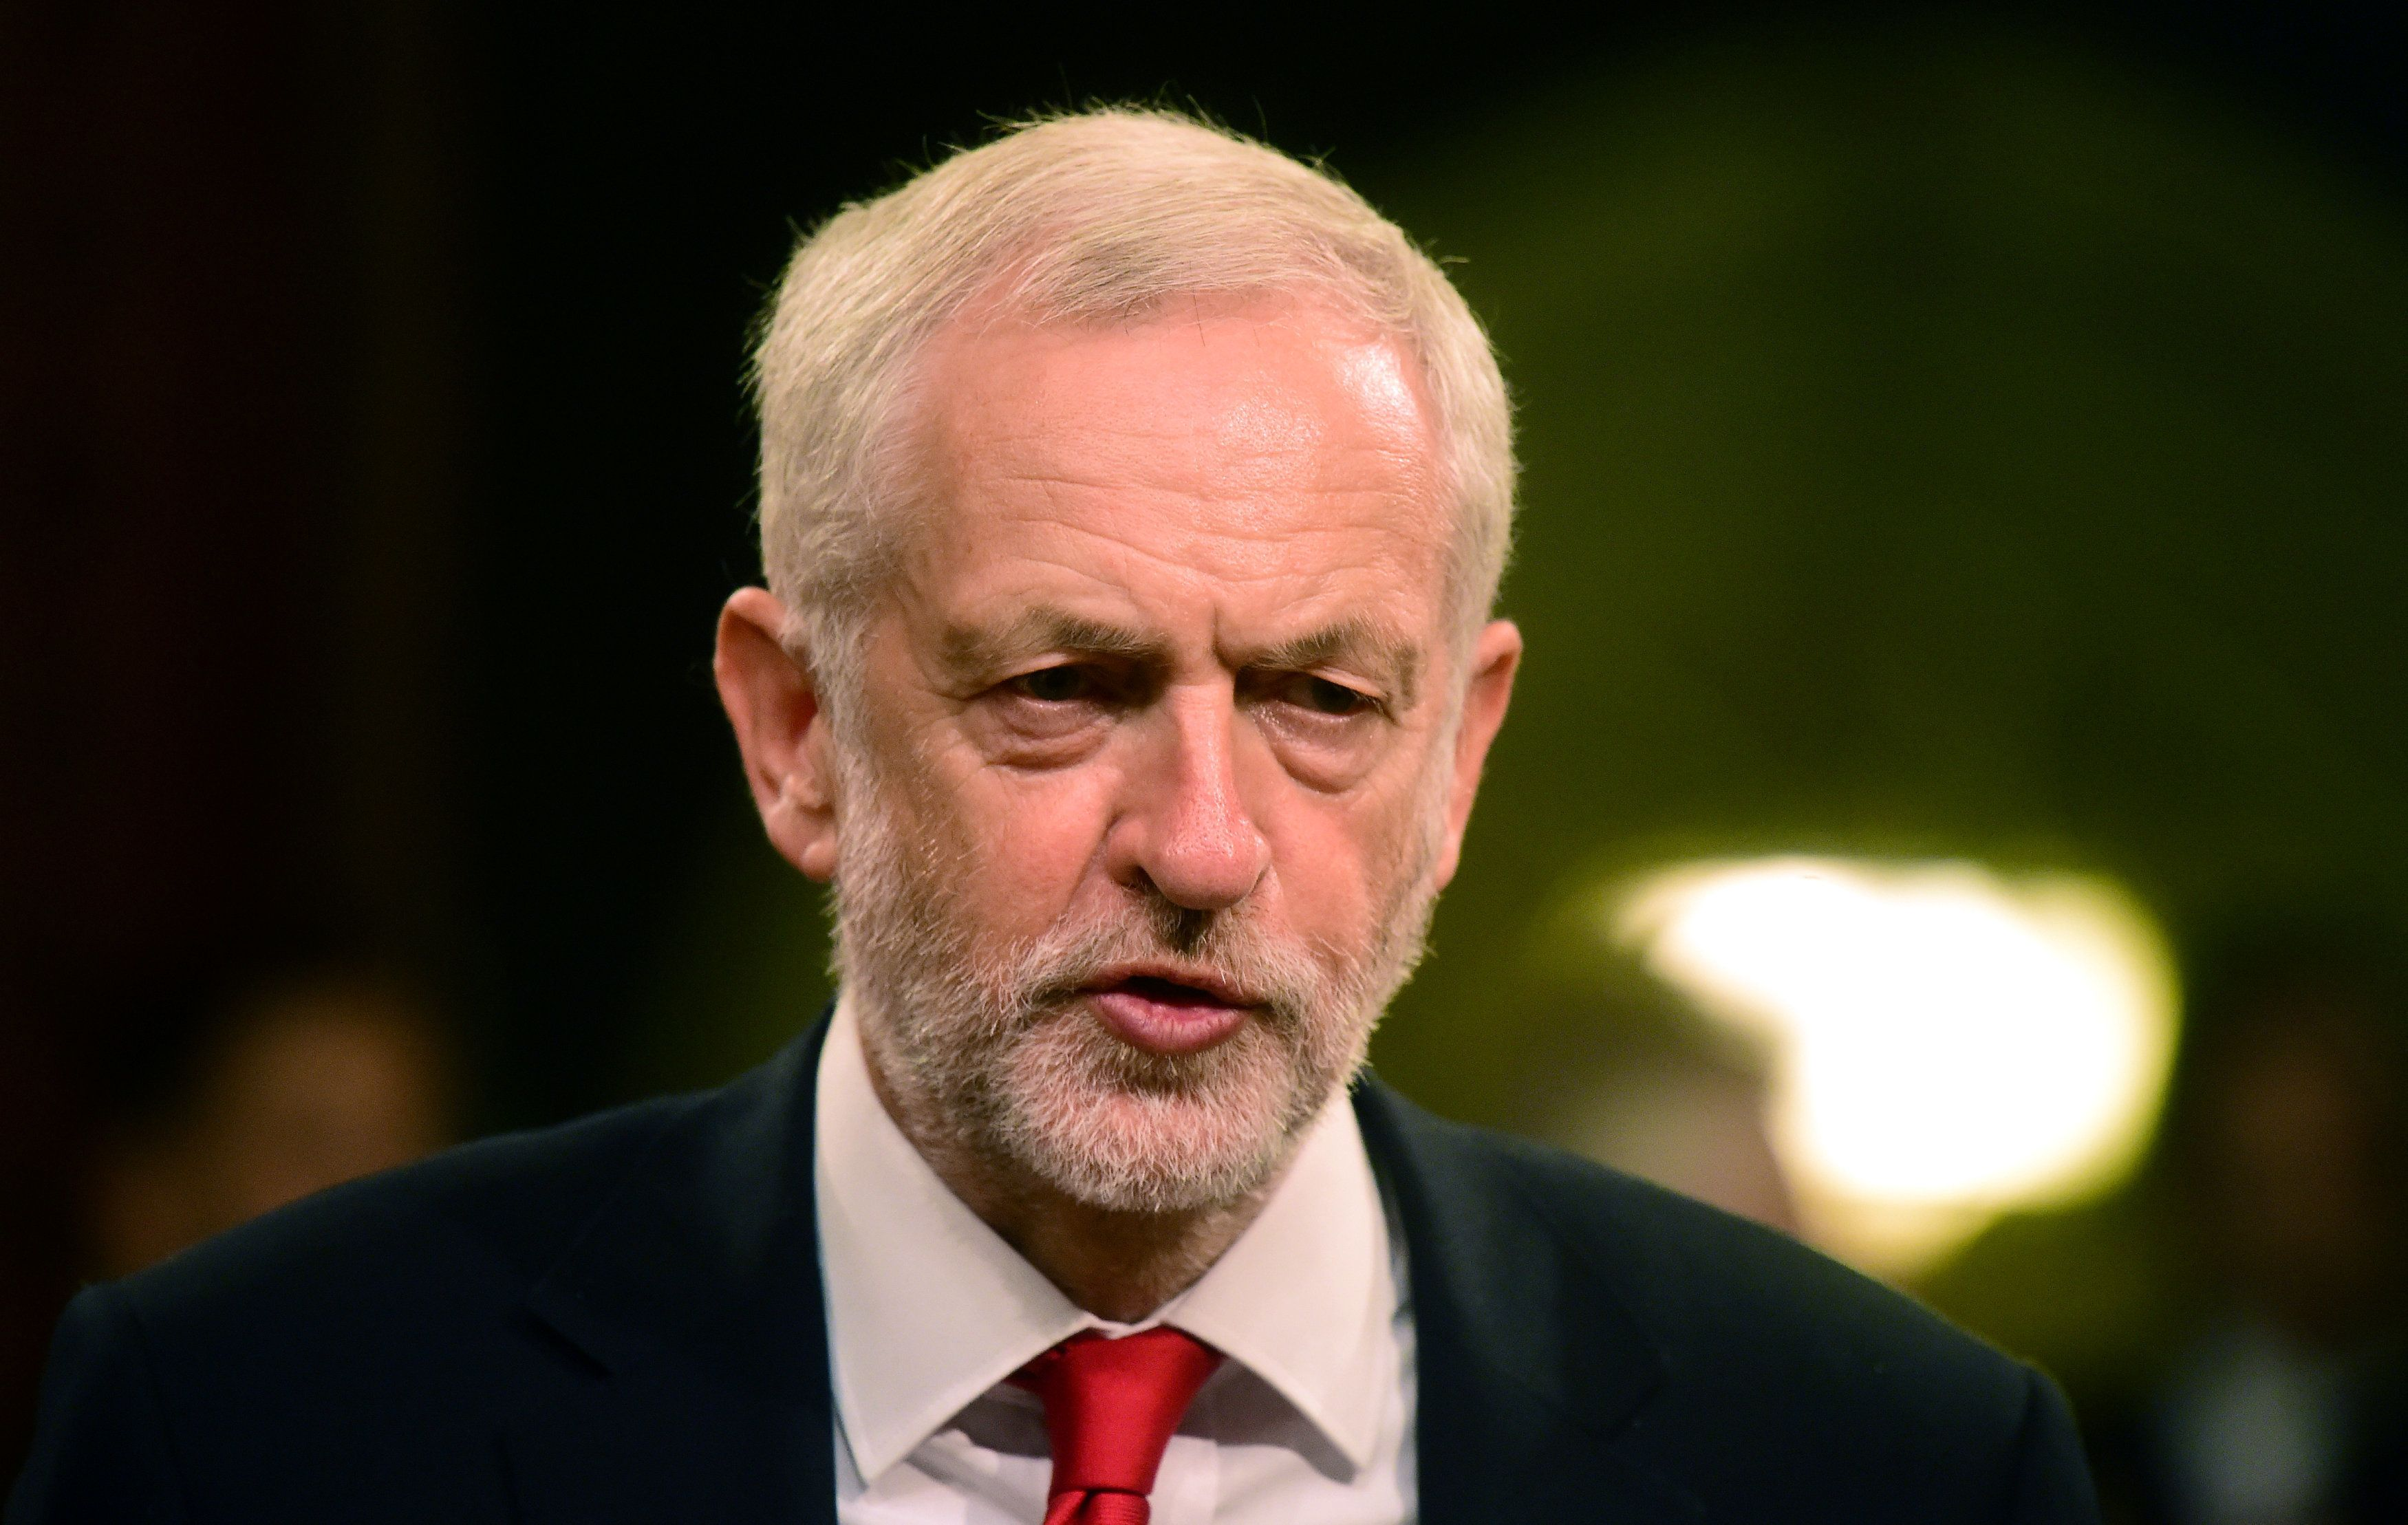 Jeremy Corbyn dismisses spy claim as 'nonsense'